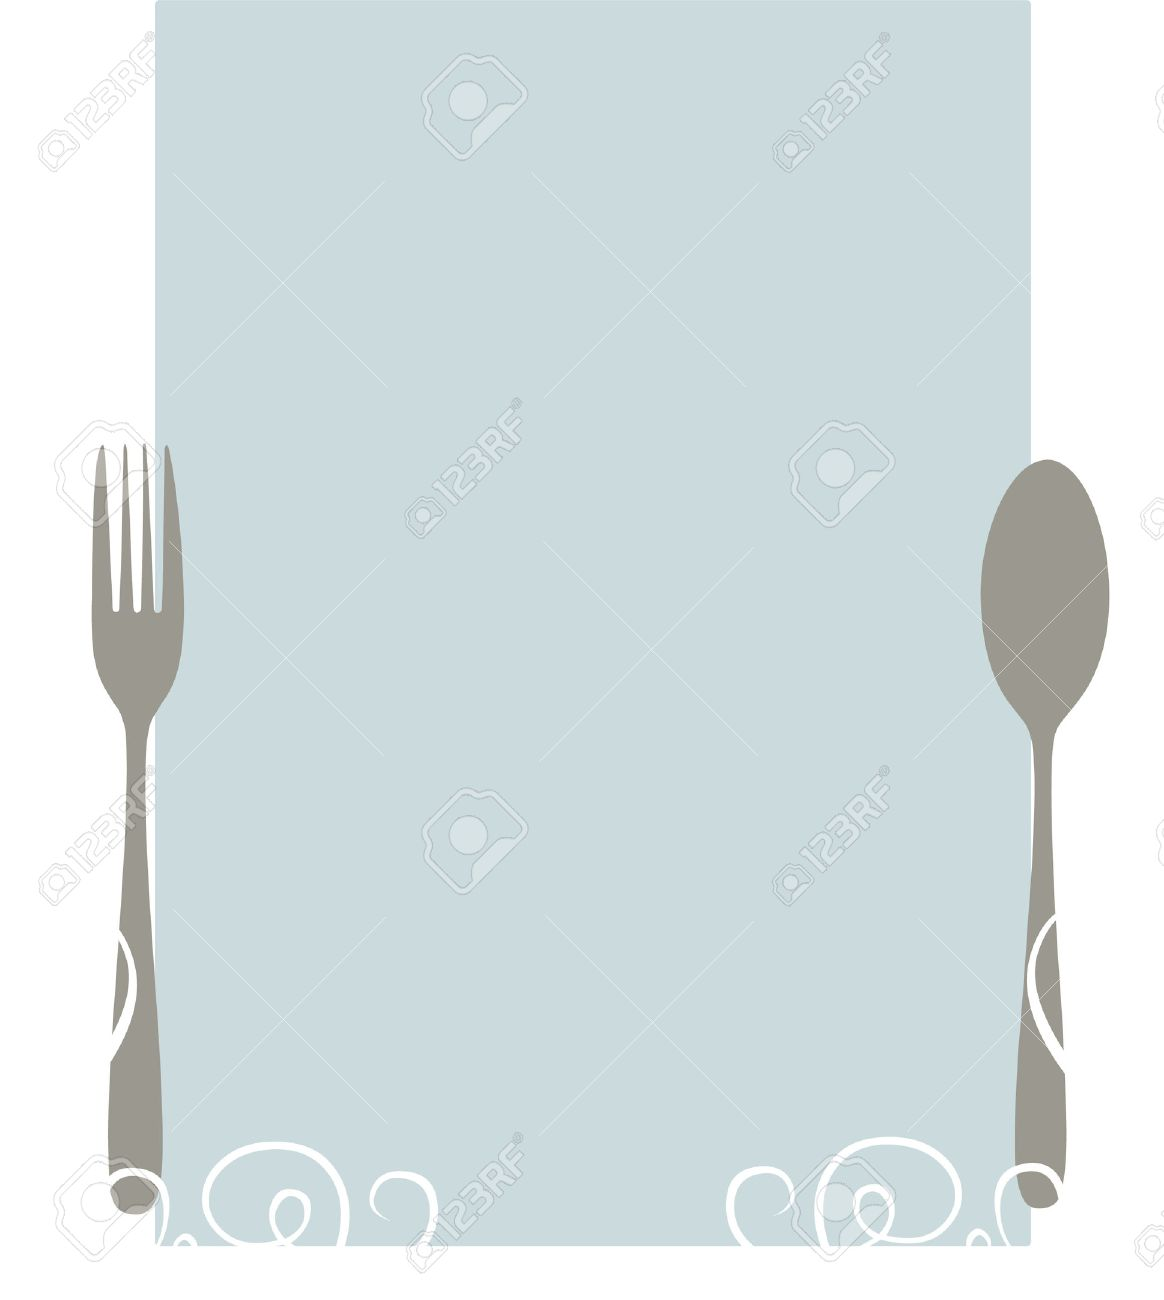 elegant blank menu template royalty free cliparts, vectors, and